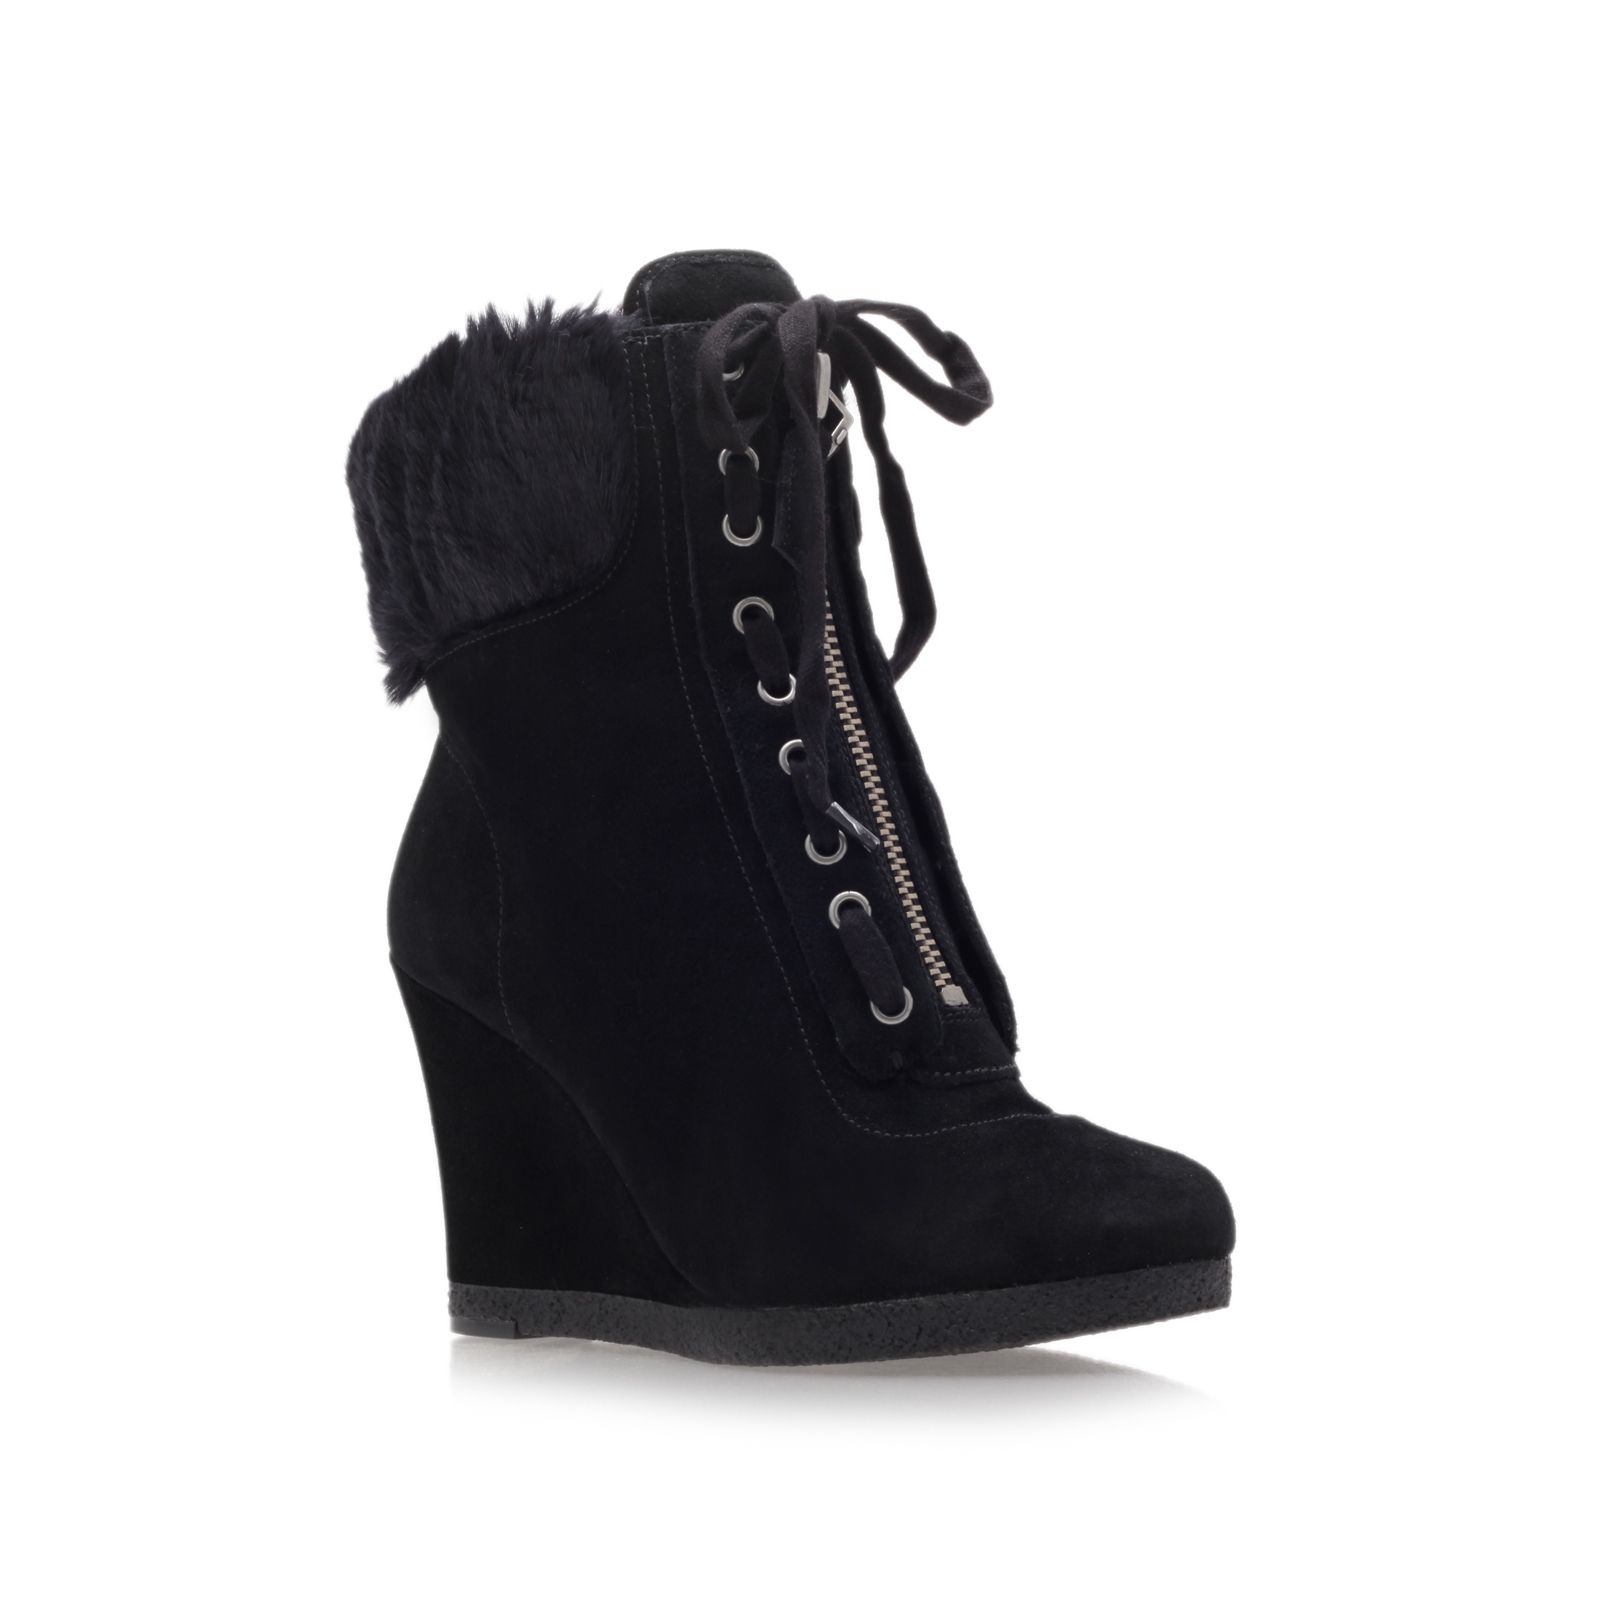 Bayla high heel wedge ankle boots